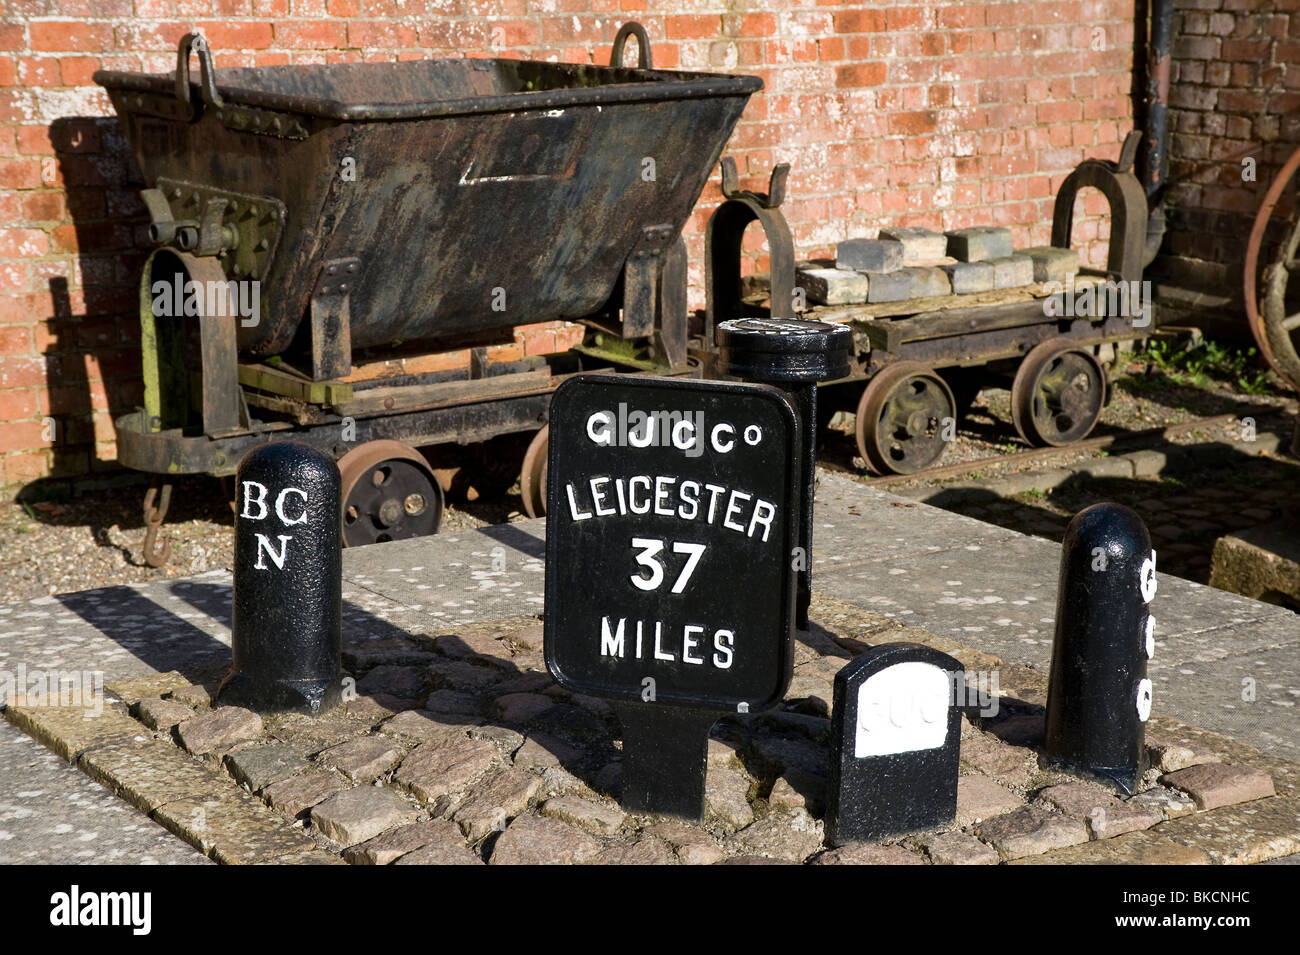 Old canal artefacts at Foxton Locks, Leicestershire, England - Stock Image